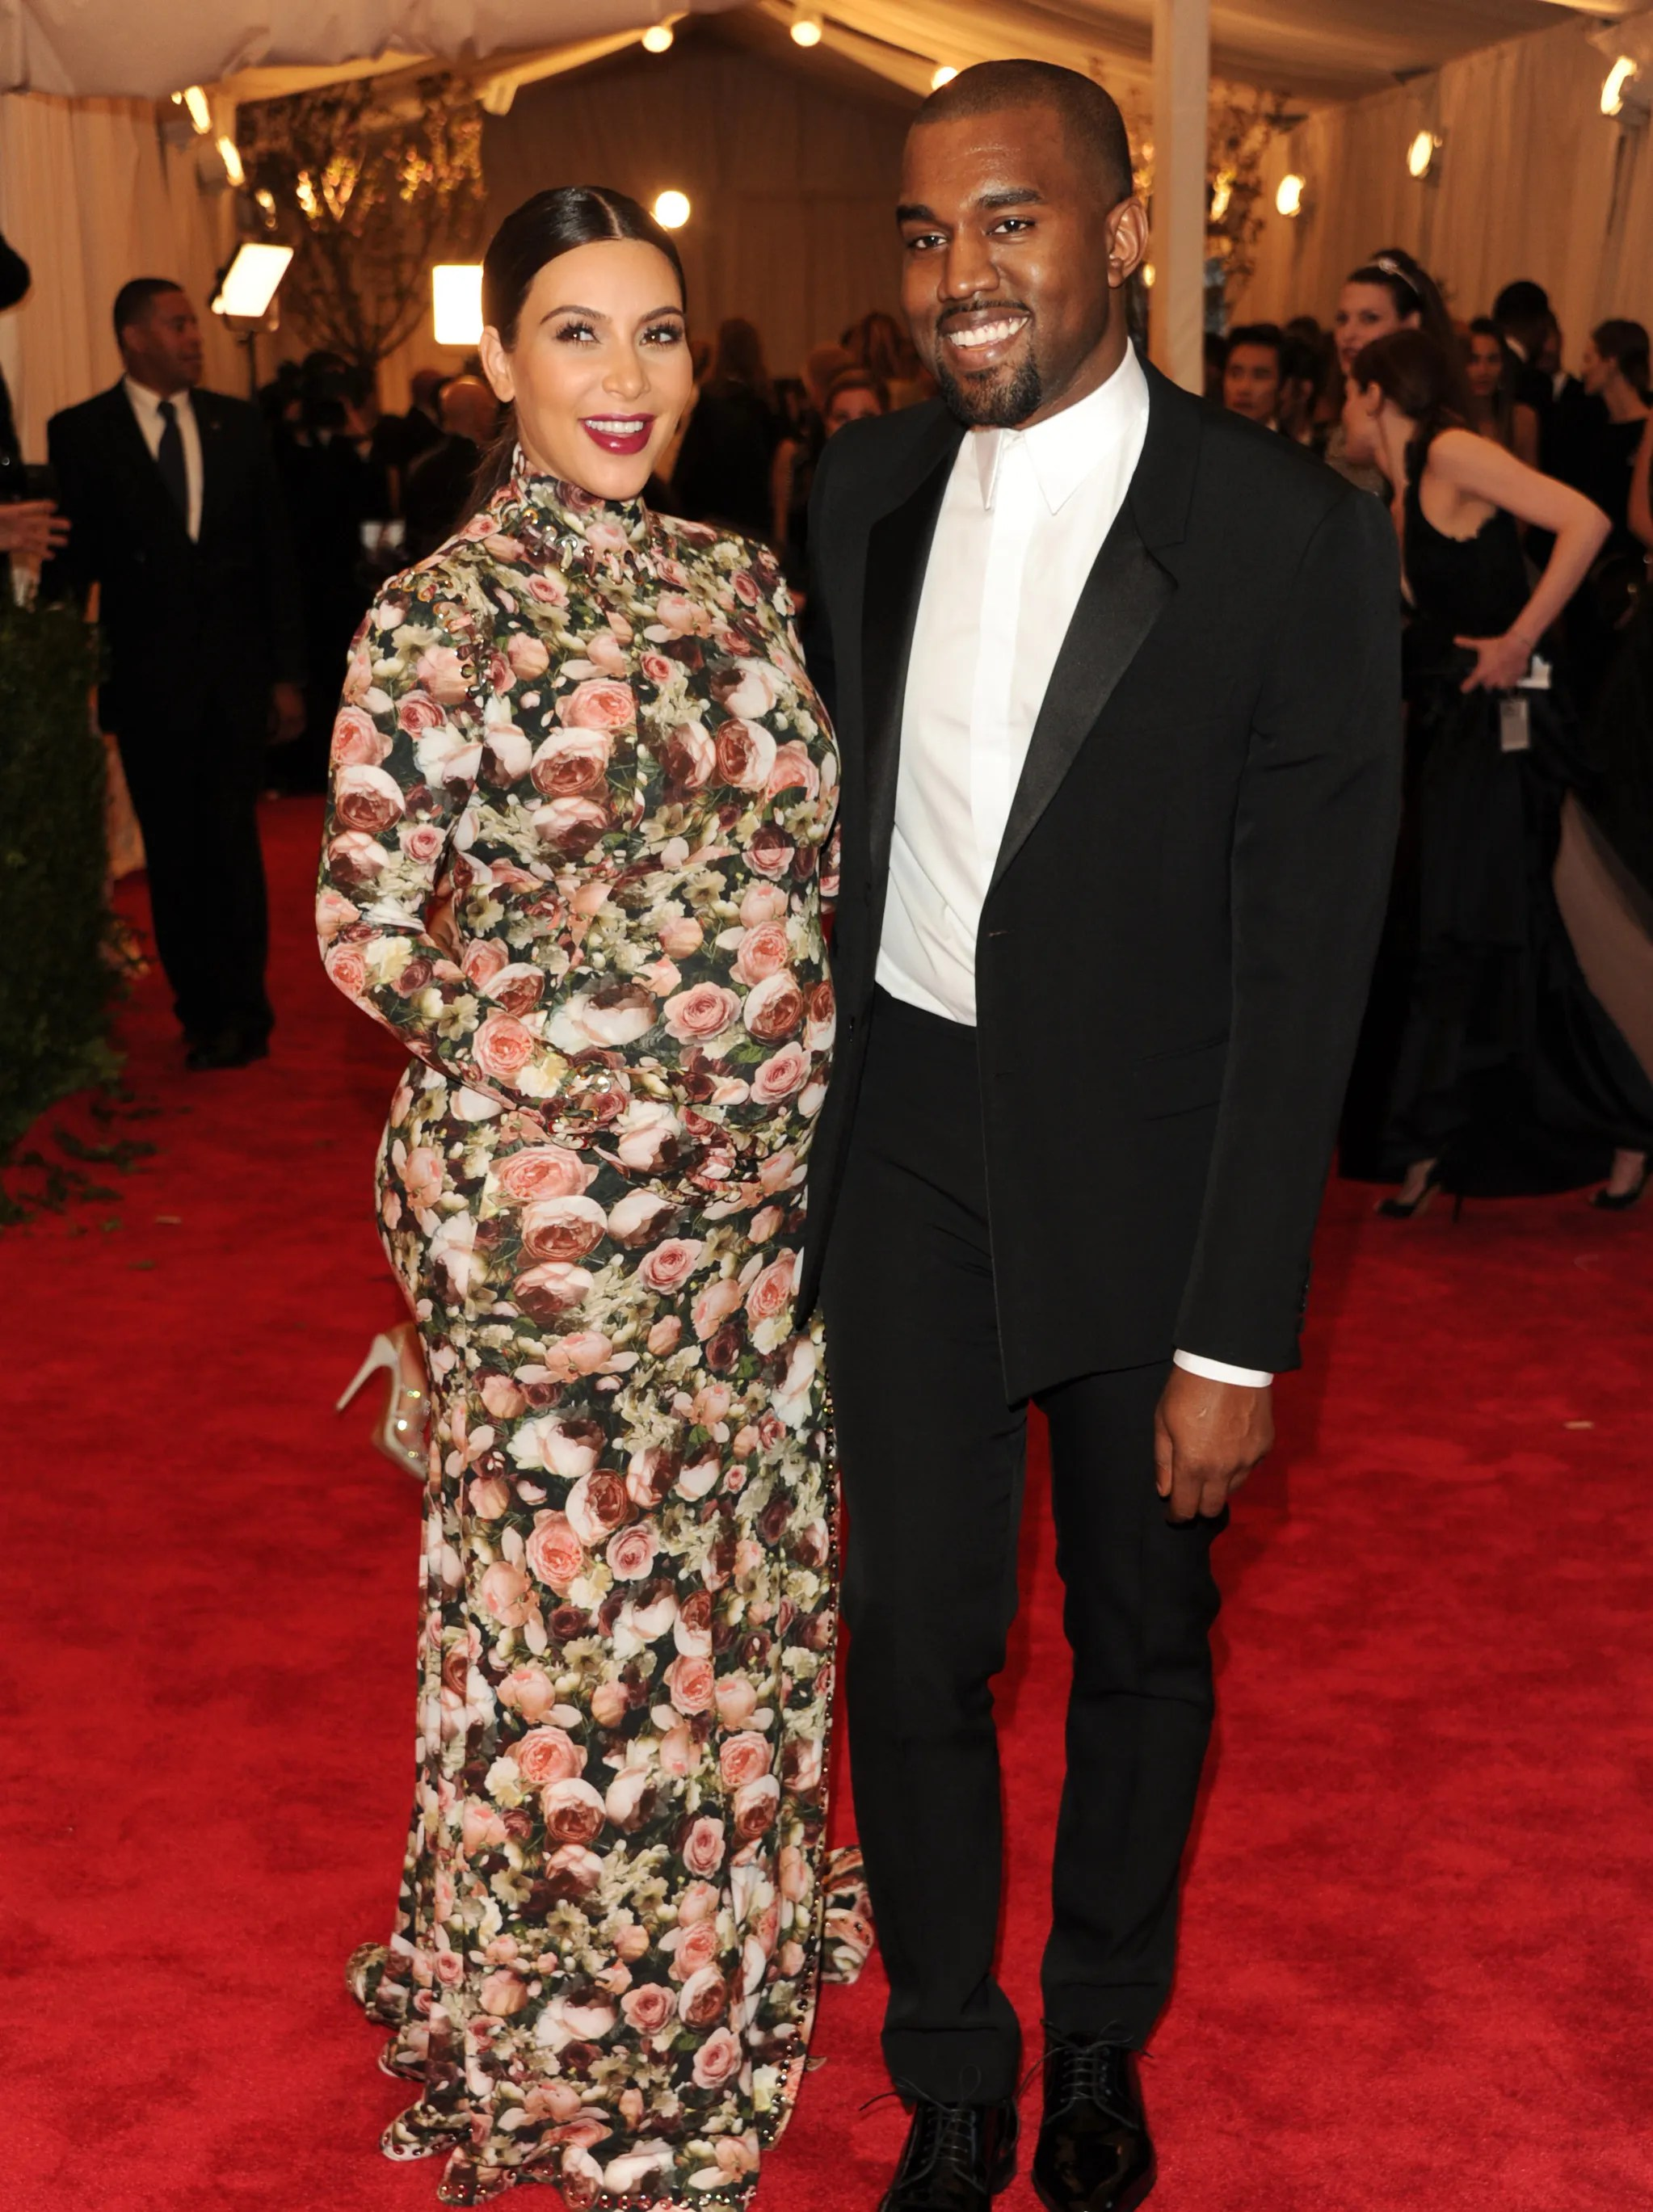 In this famous -- or infamous -- May 6, 2013 pic, West and Kardashian attend the Met Ball in New York, fashion's biggest night. She got major flack for her Givenchy dress.